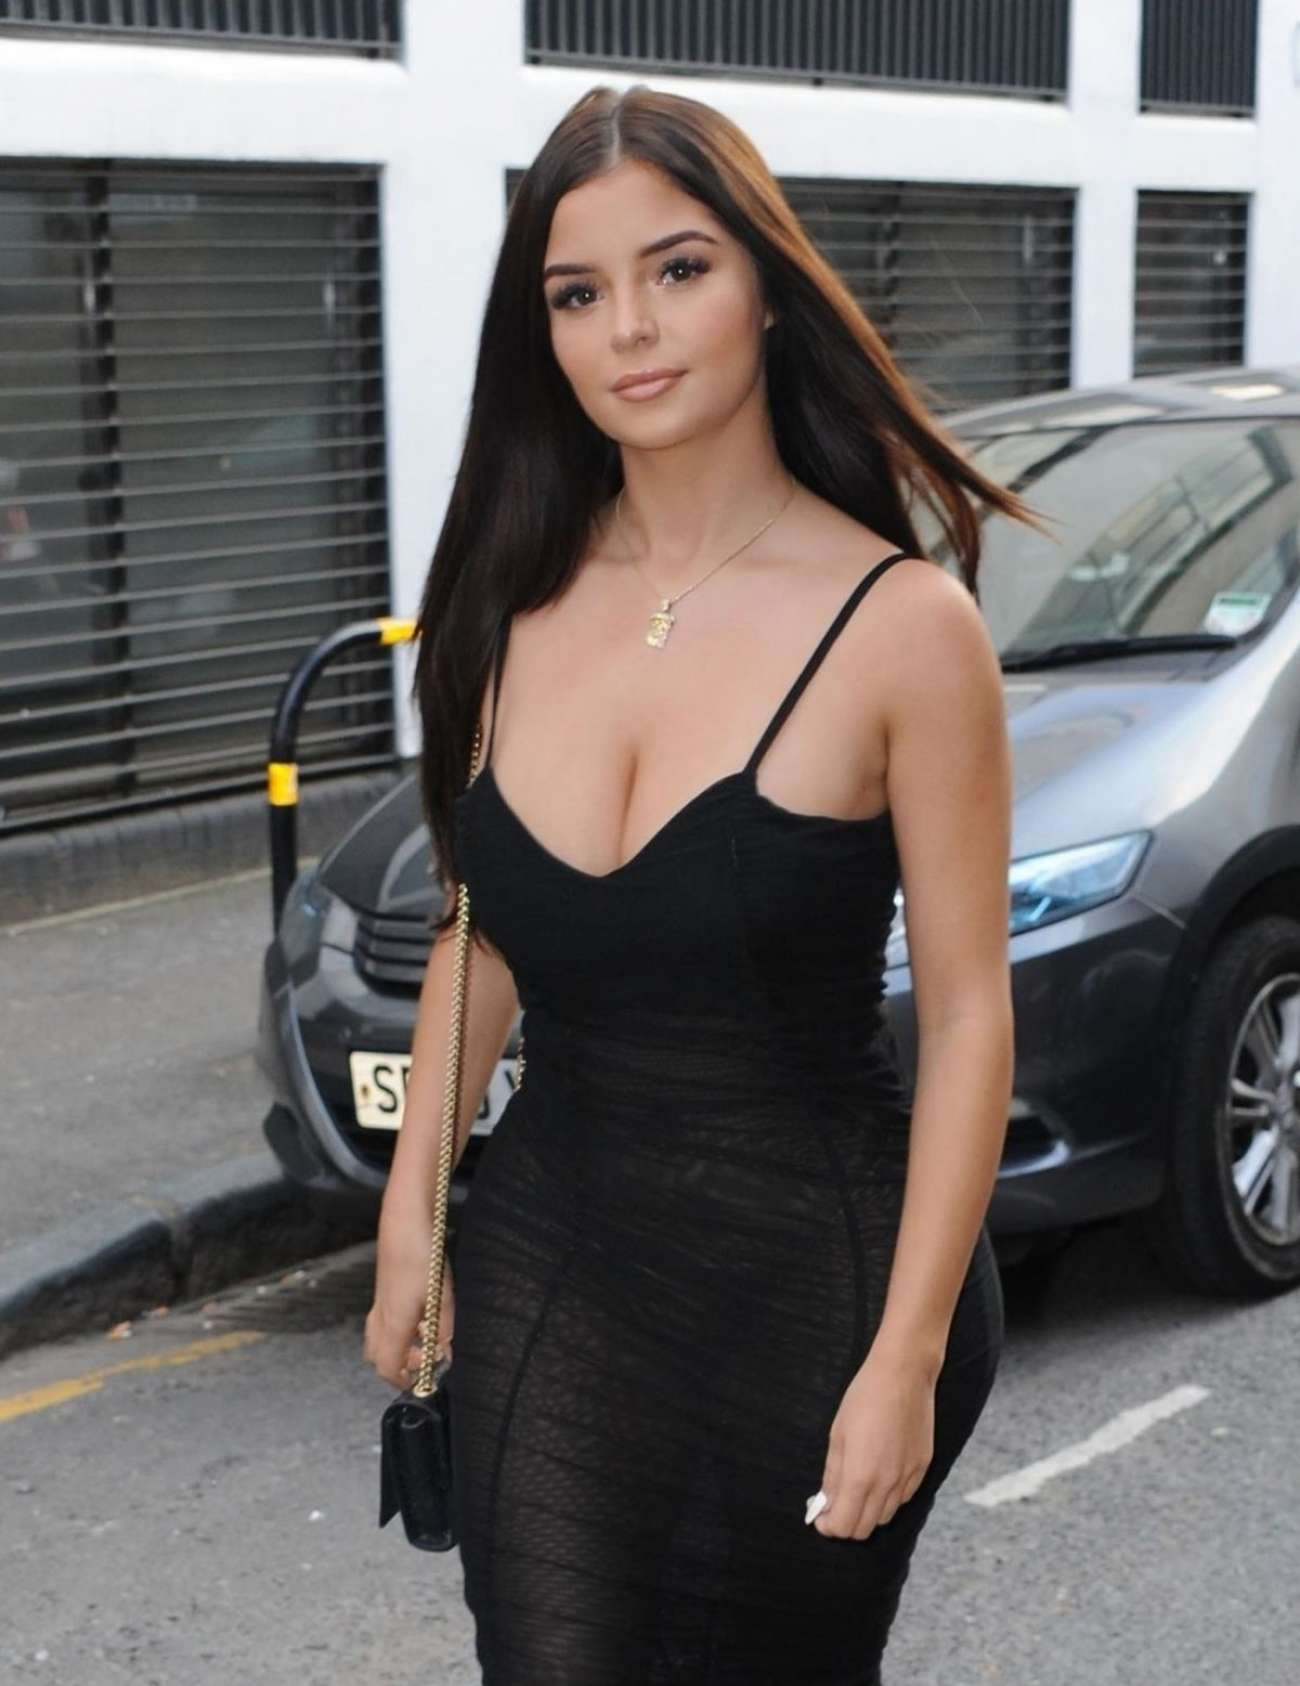 Demi Rose Mawby 2018 : Demi Rose Mawby: Skinny Dip Event In London-10